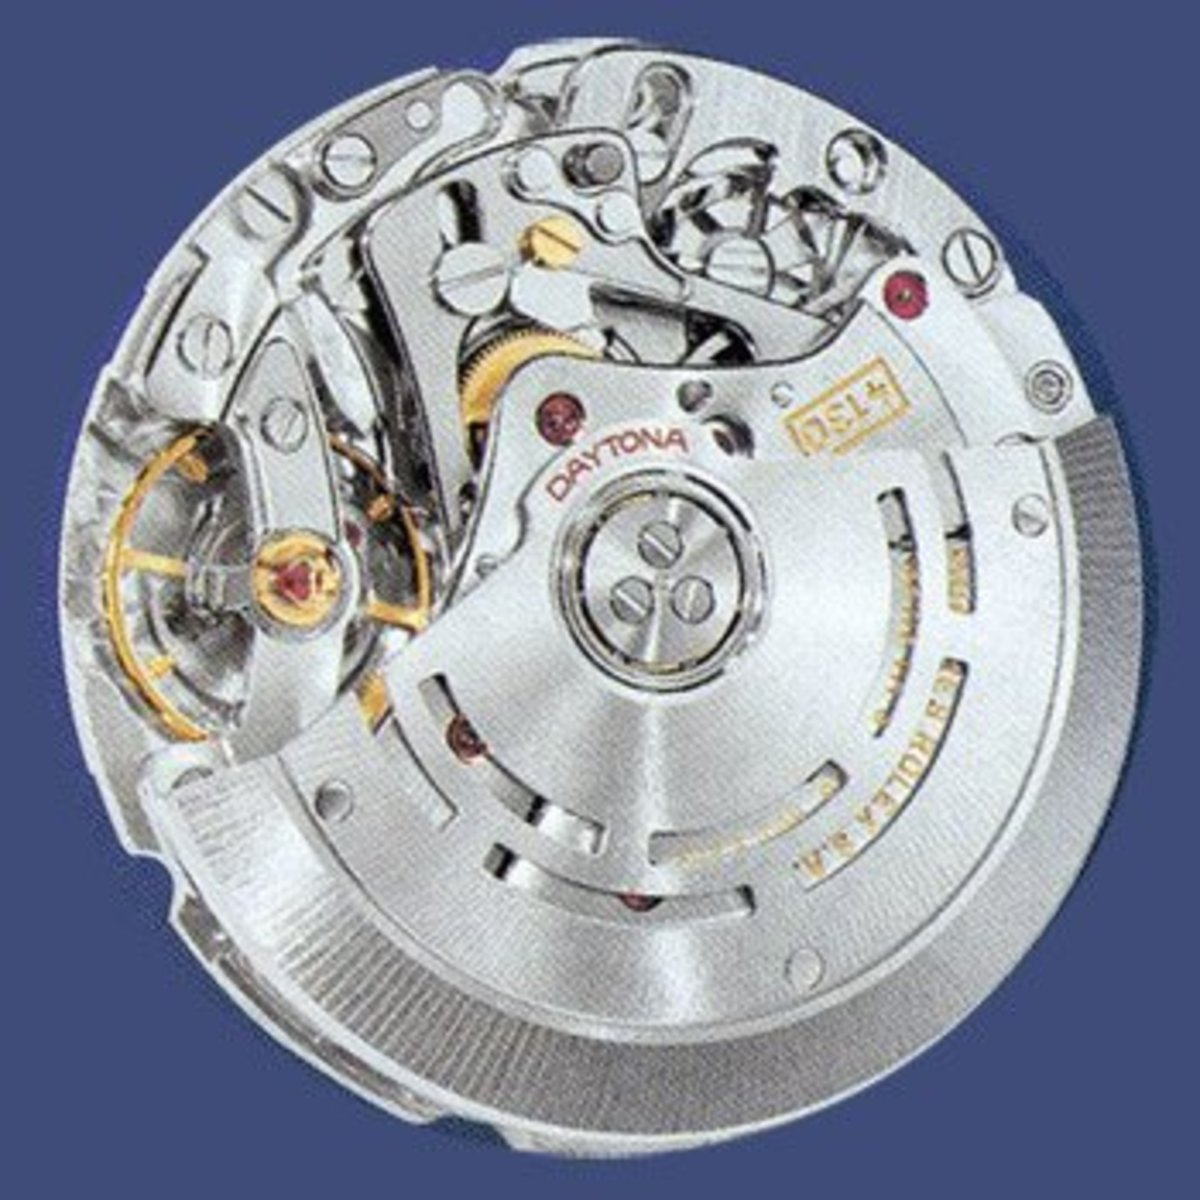 Rolex Watch Movement:  Self Winding, Manual Winding, and Quartz